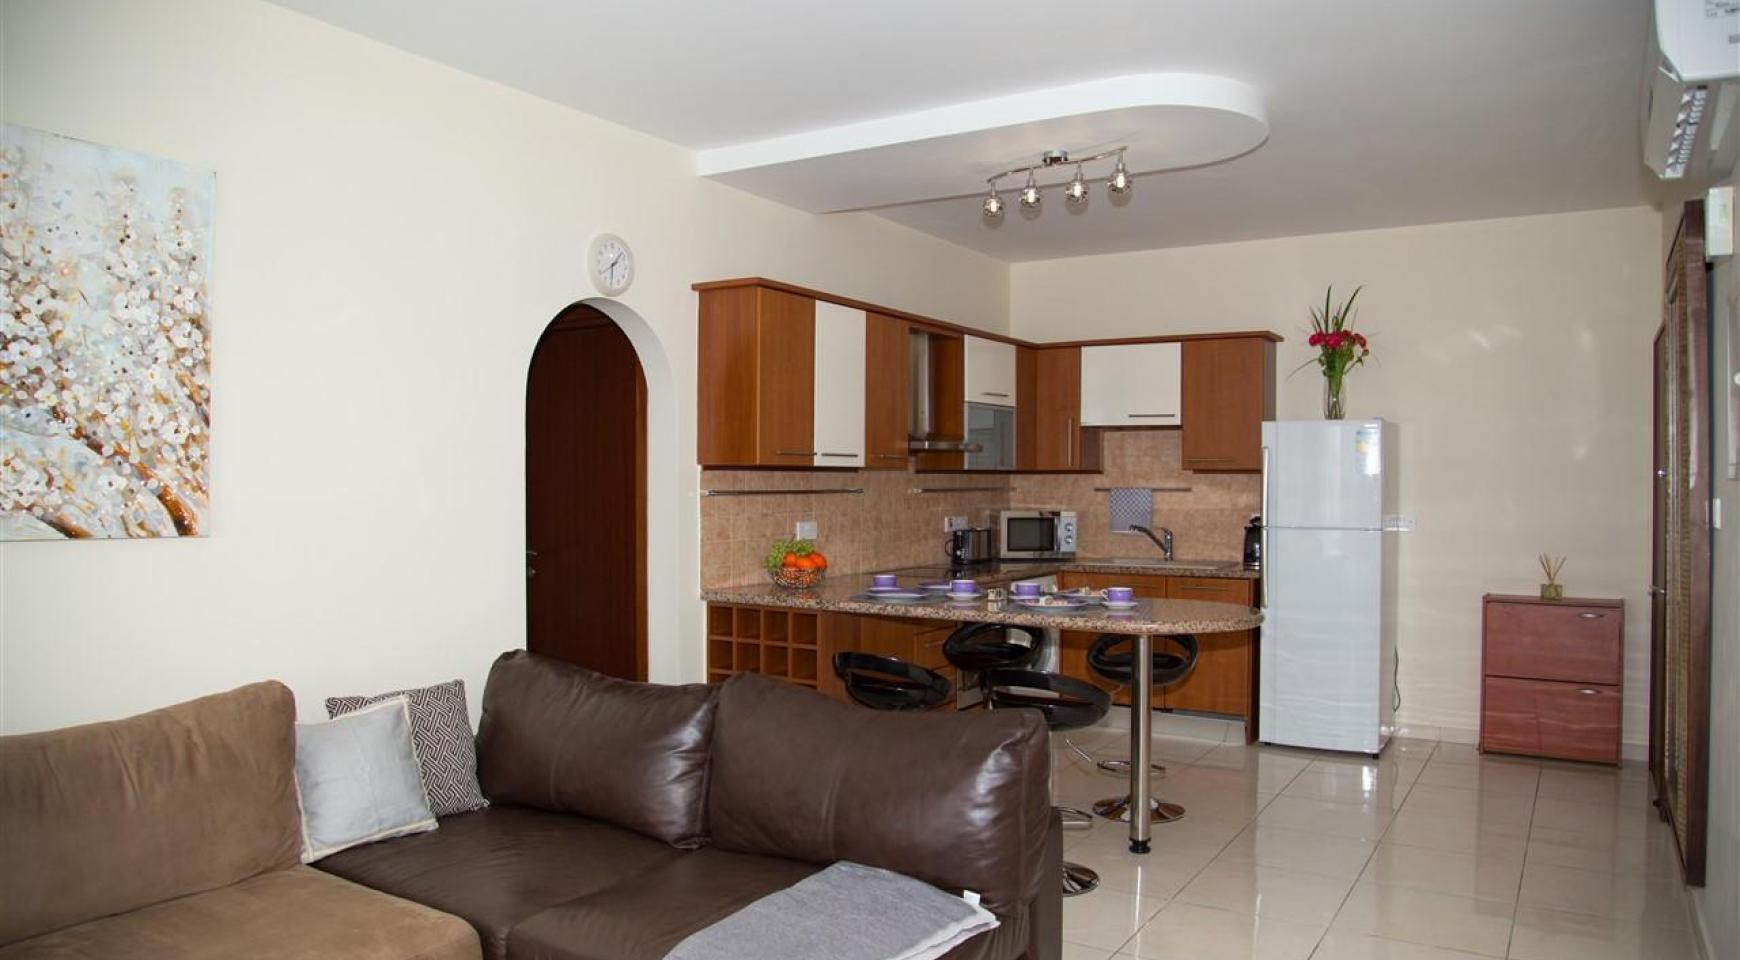 Luxury 2 Bedroom Apartment Mesogios Iris 304 in the Tourist area near the Beach - 8